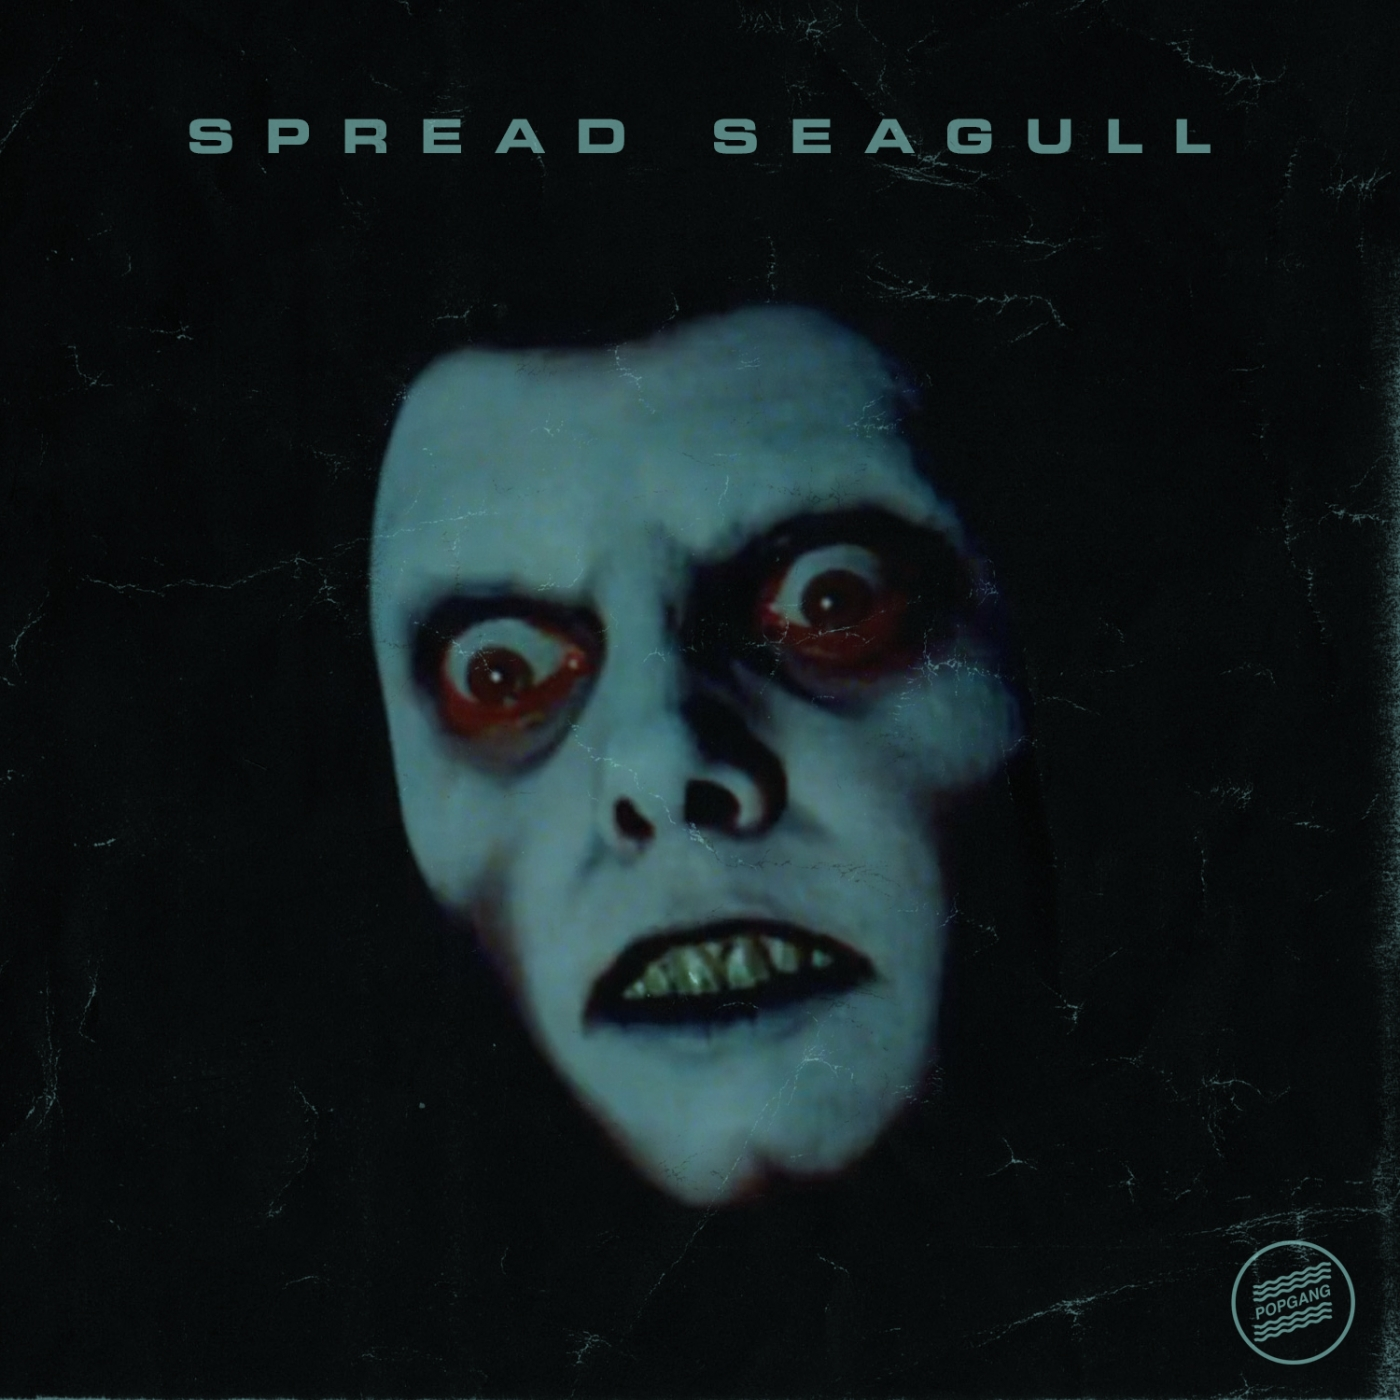 Spread Seagull - Self Titled EP